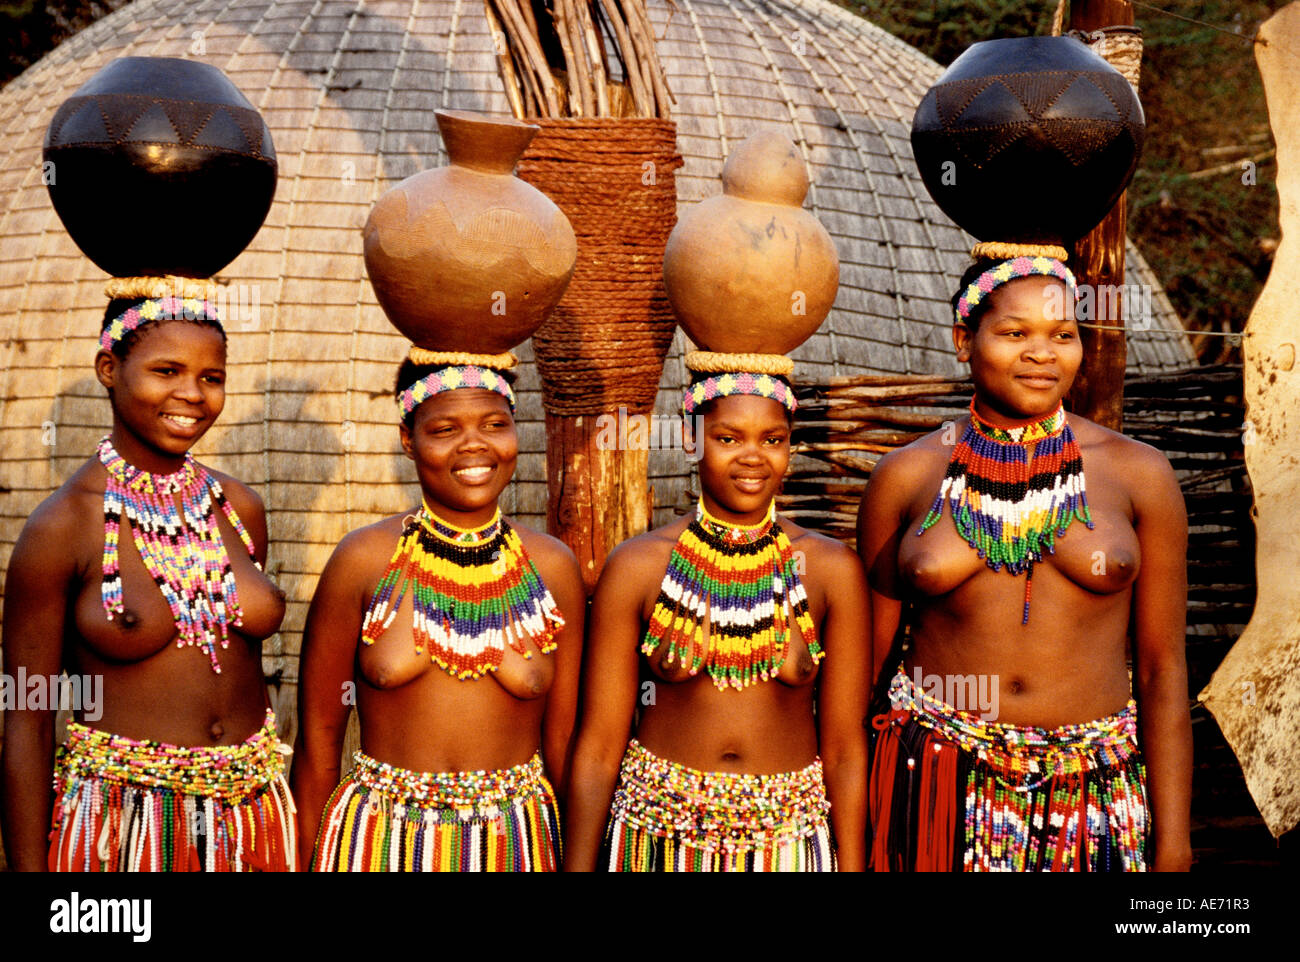 Zulu Shakaland Zulu maidens carrying pots on heads at Shakaland in KwaZulu Natal, South  Africa